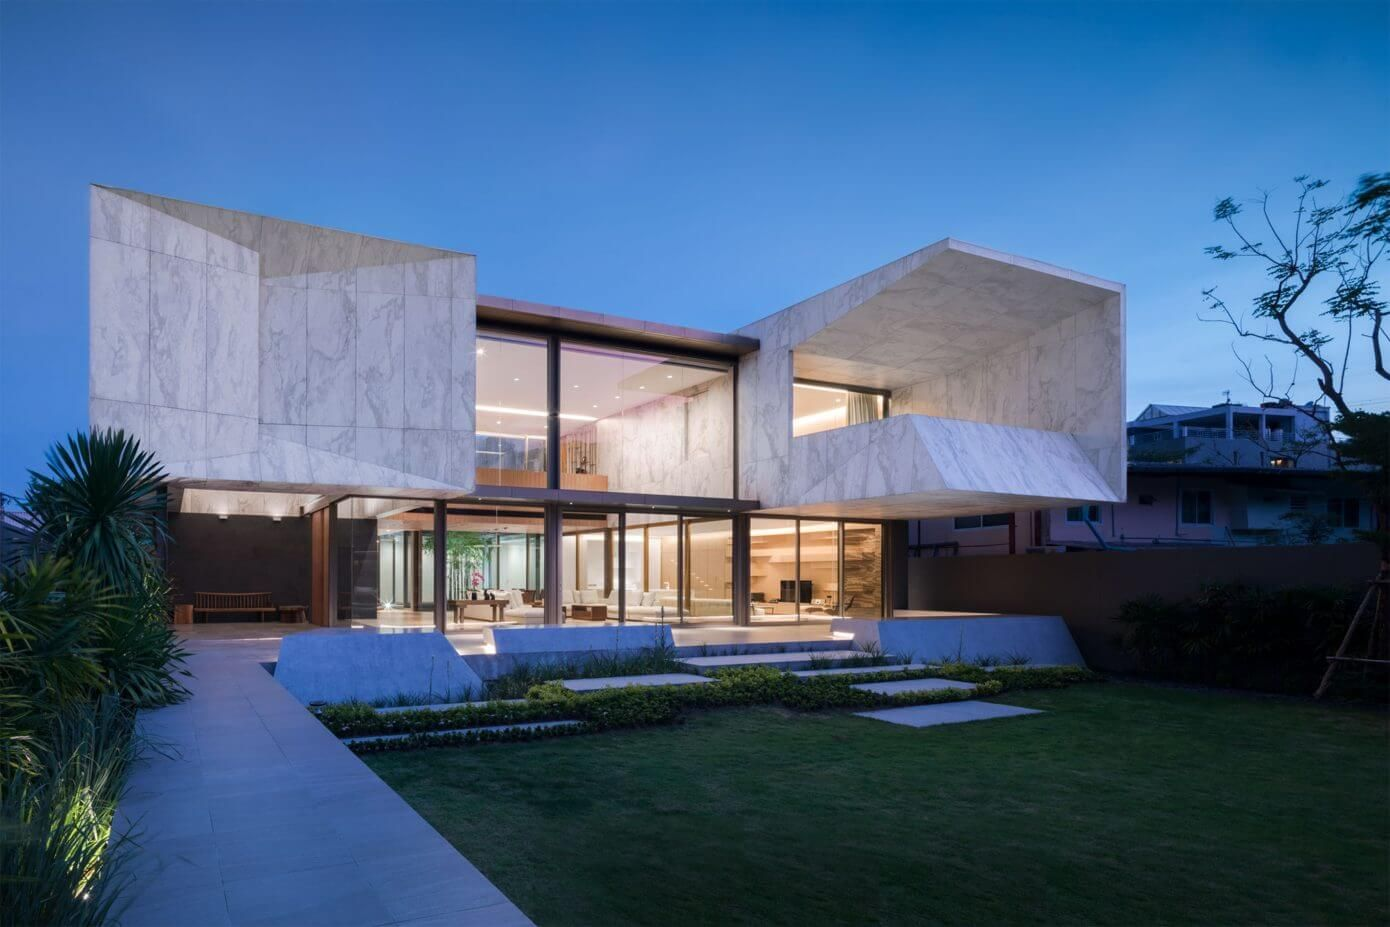 Contemporary concrete house located in bangkok thailand designed by openbox architects also rh pinterest